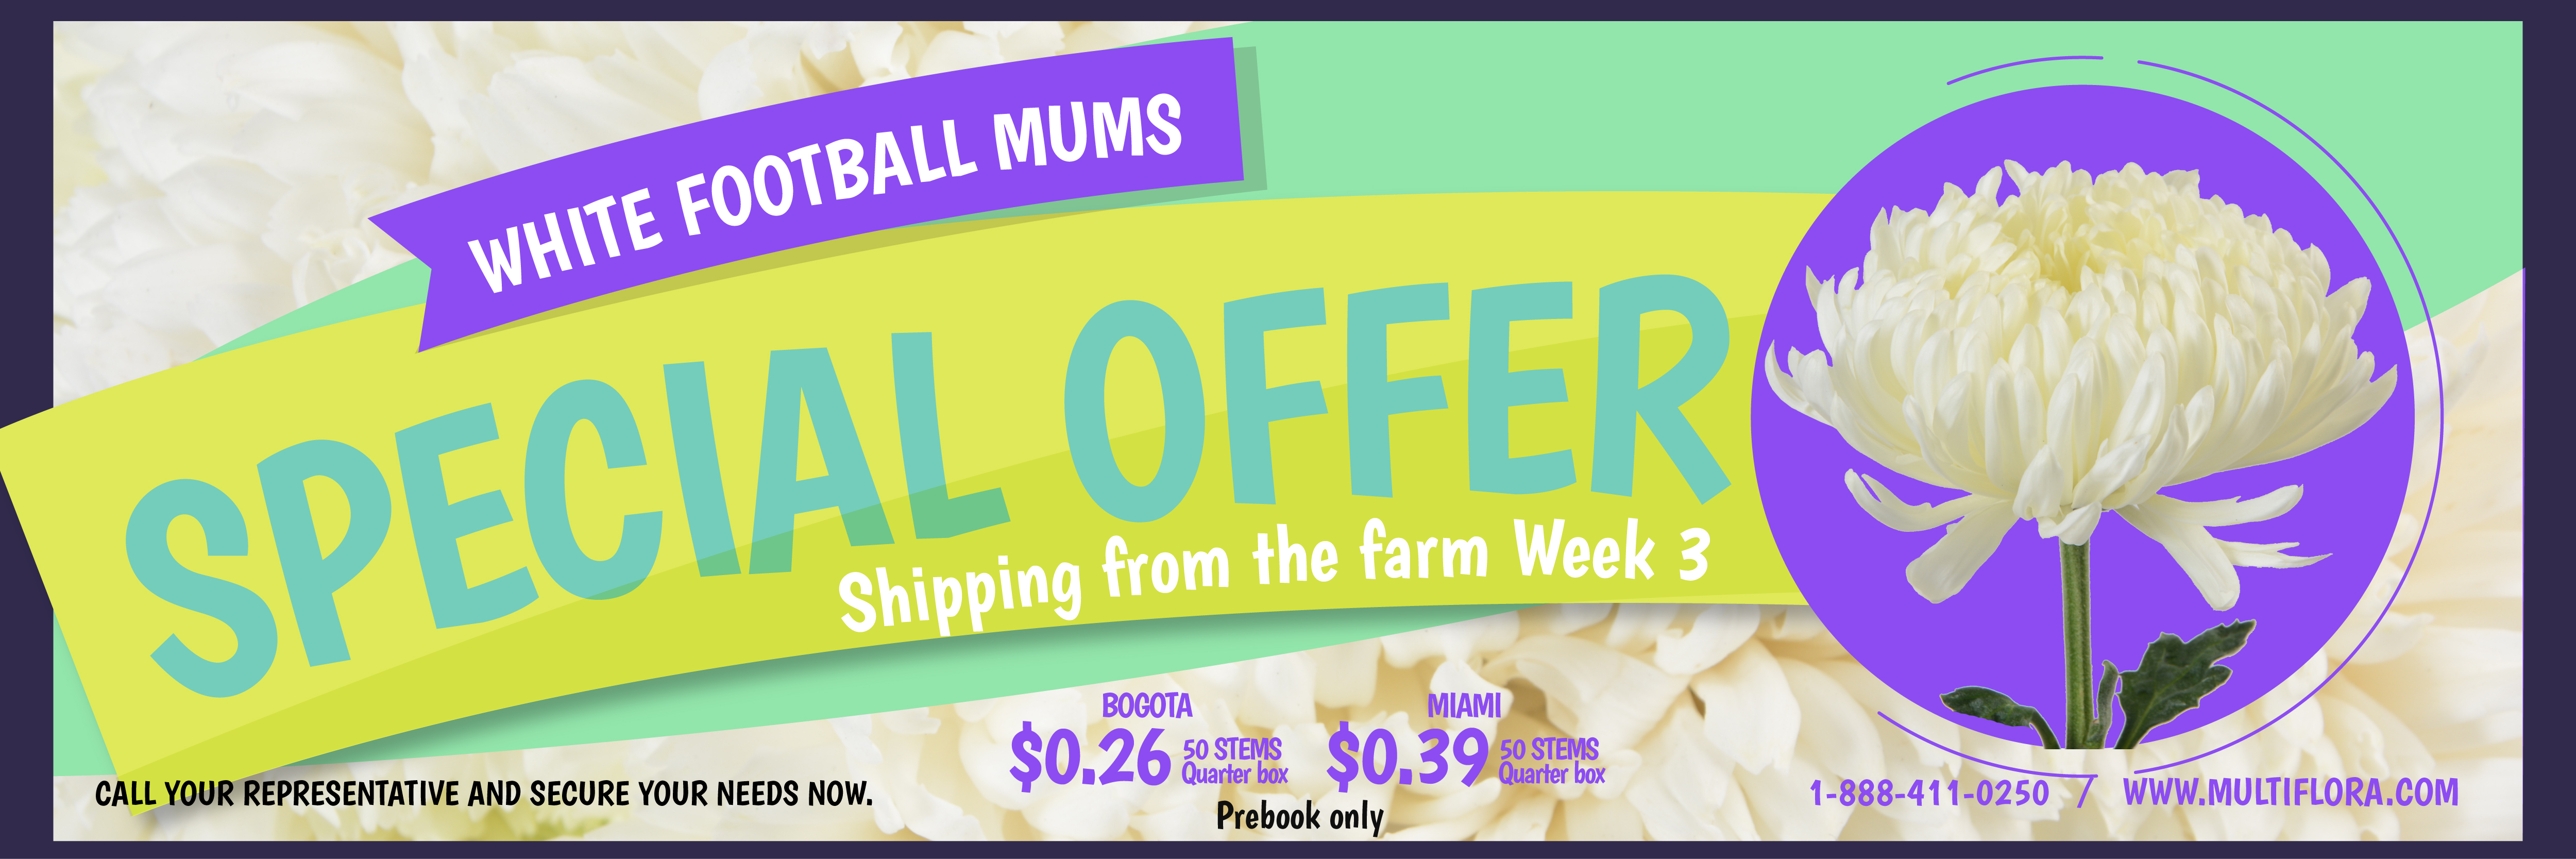 Special-Offer-week-3-Football-white-web-01